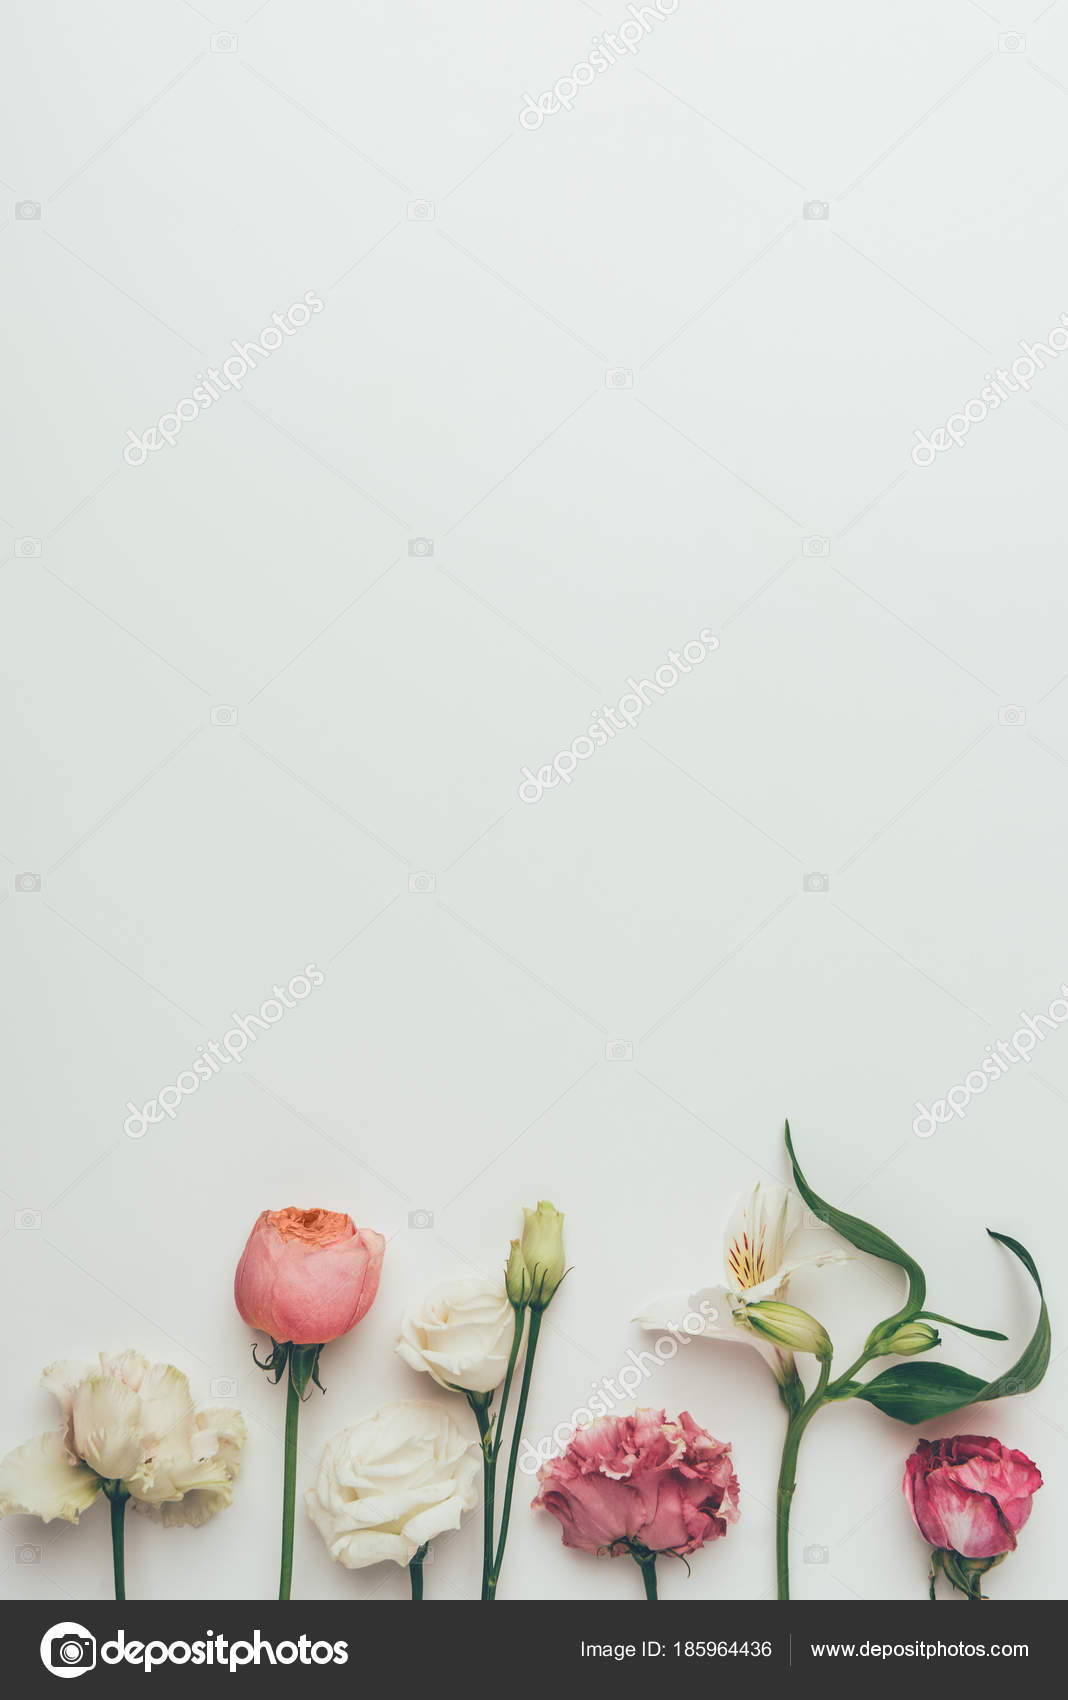 Beautiful Blooming White Pink Flowers Grey Background Stock Photo